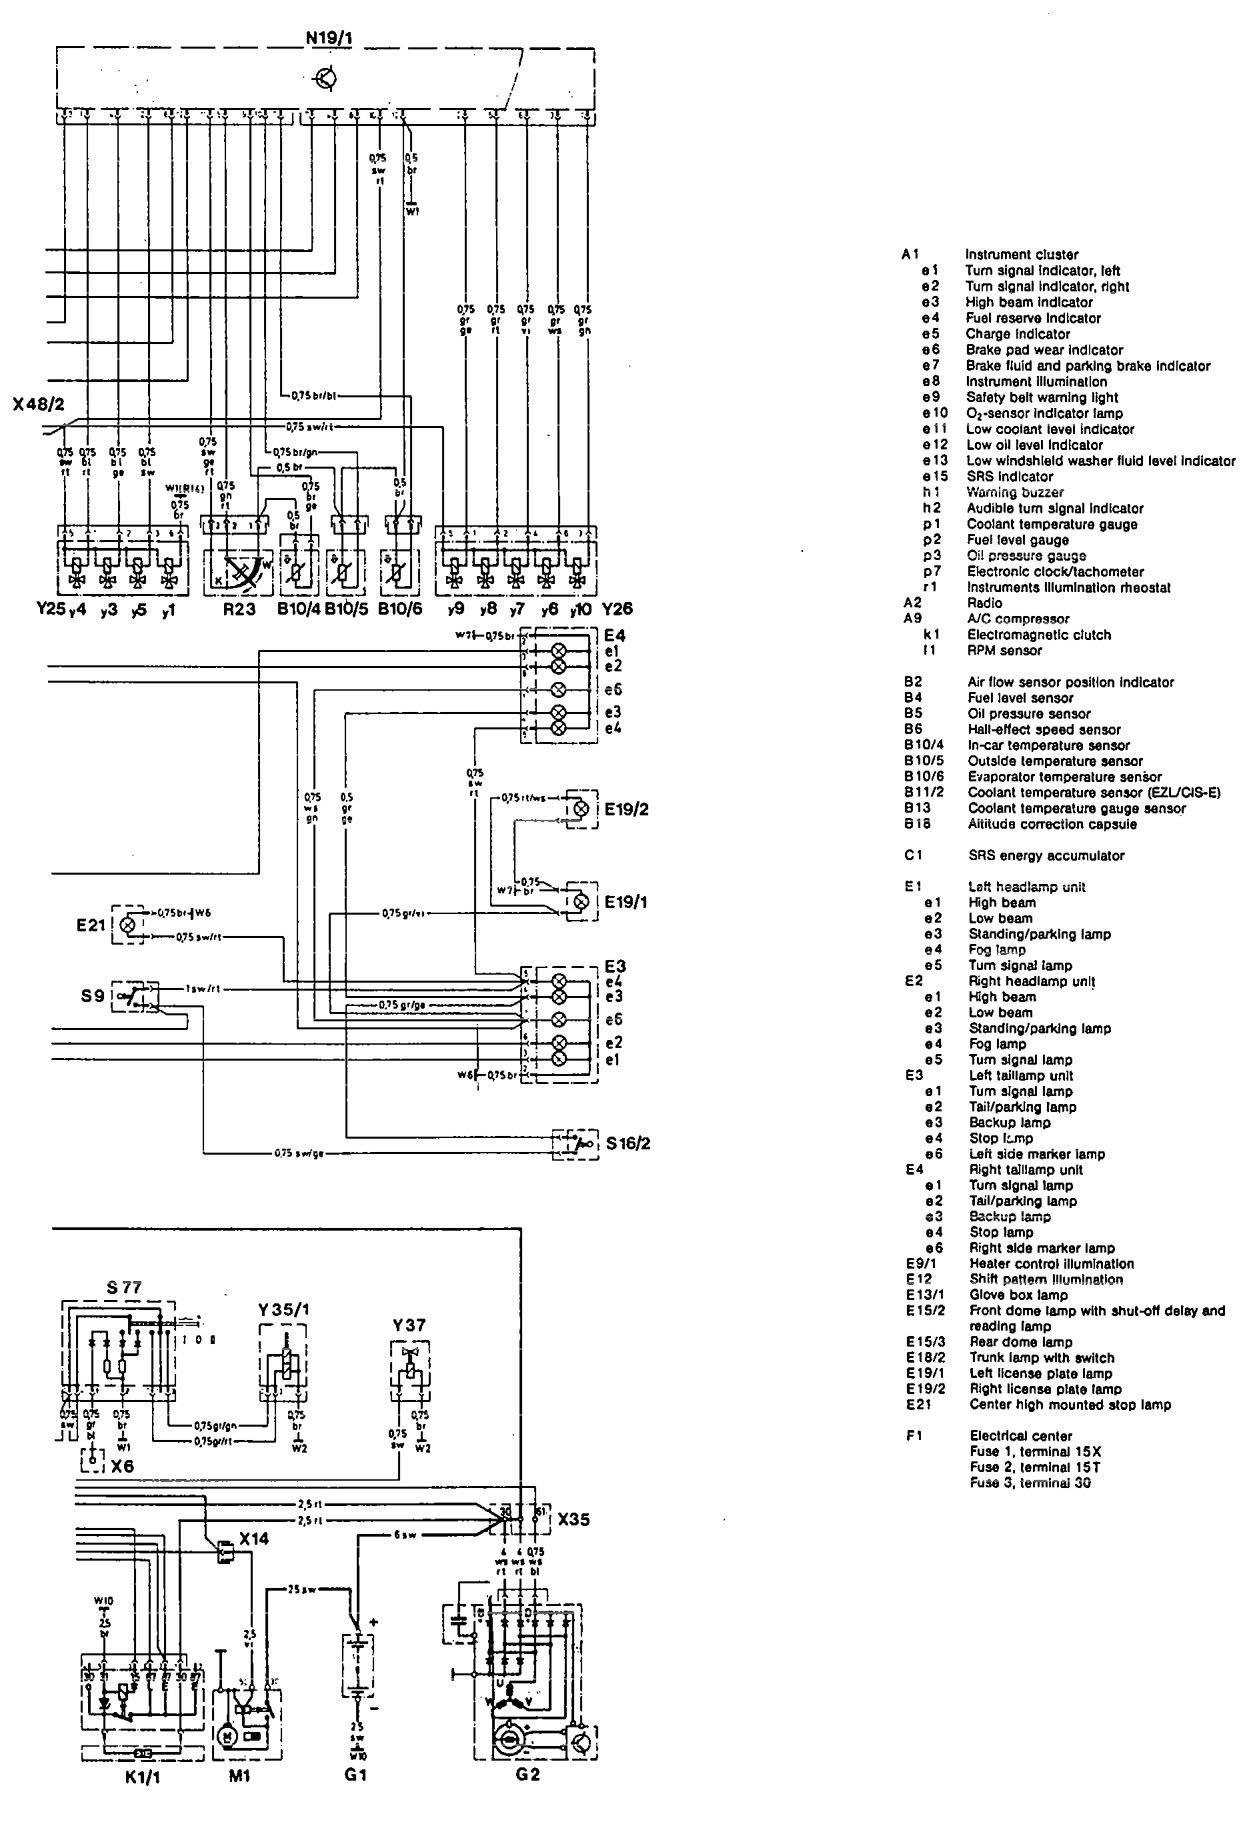 Mercedes Benz 190e 1991 Radio Wiring Diagram 1991 Jeep